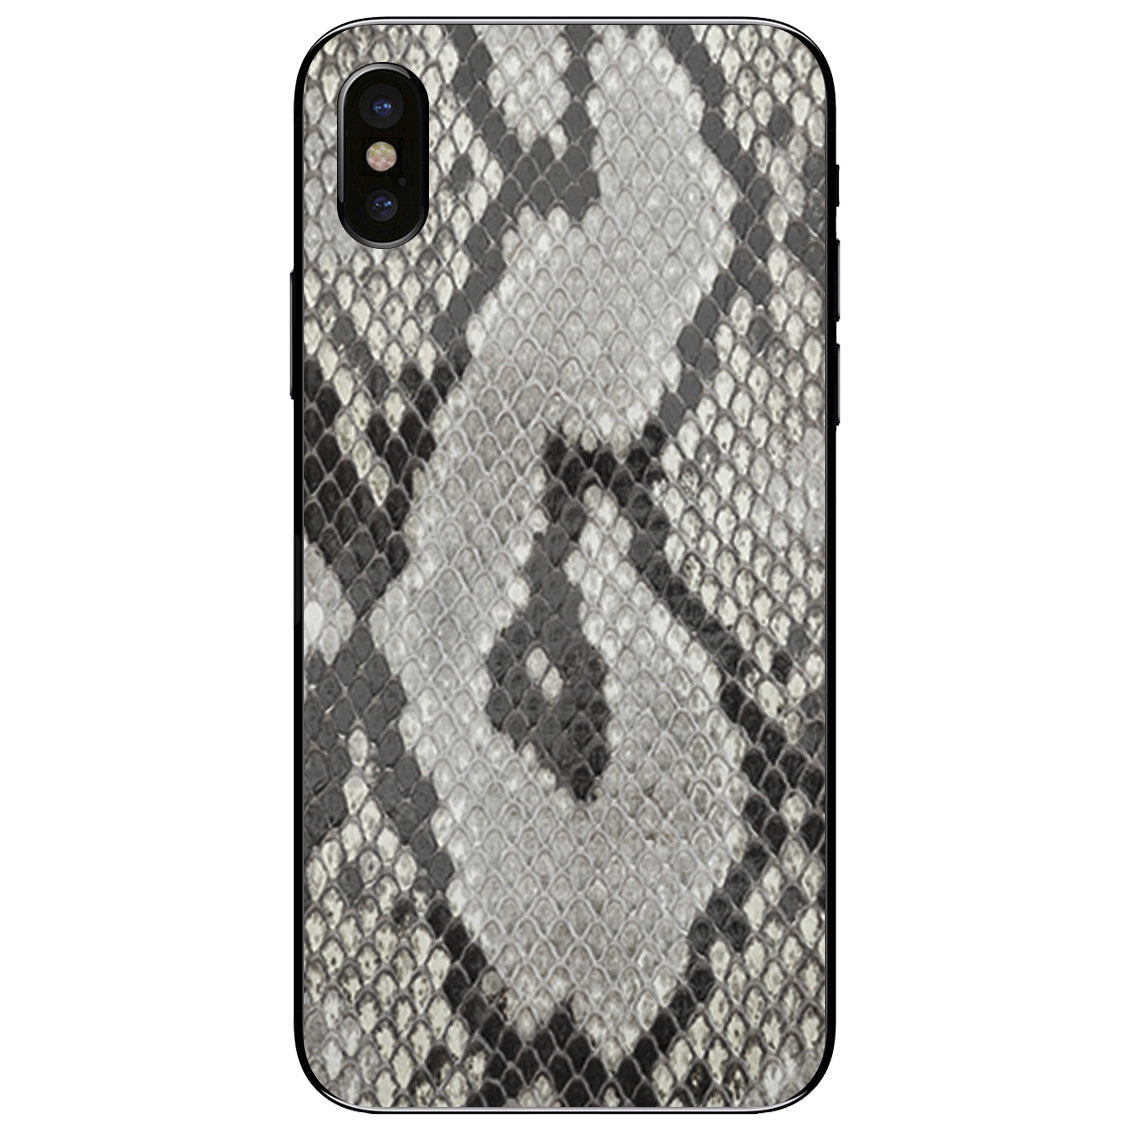 Python Back iPhone XS Leather Skin